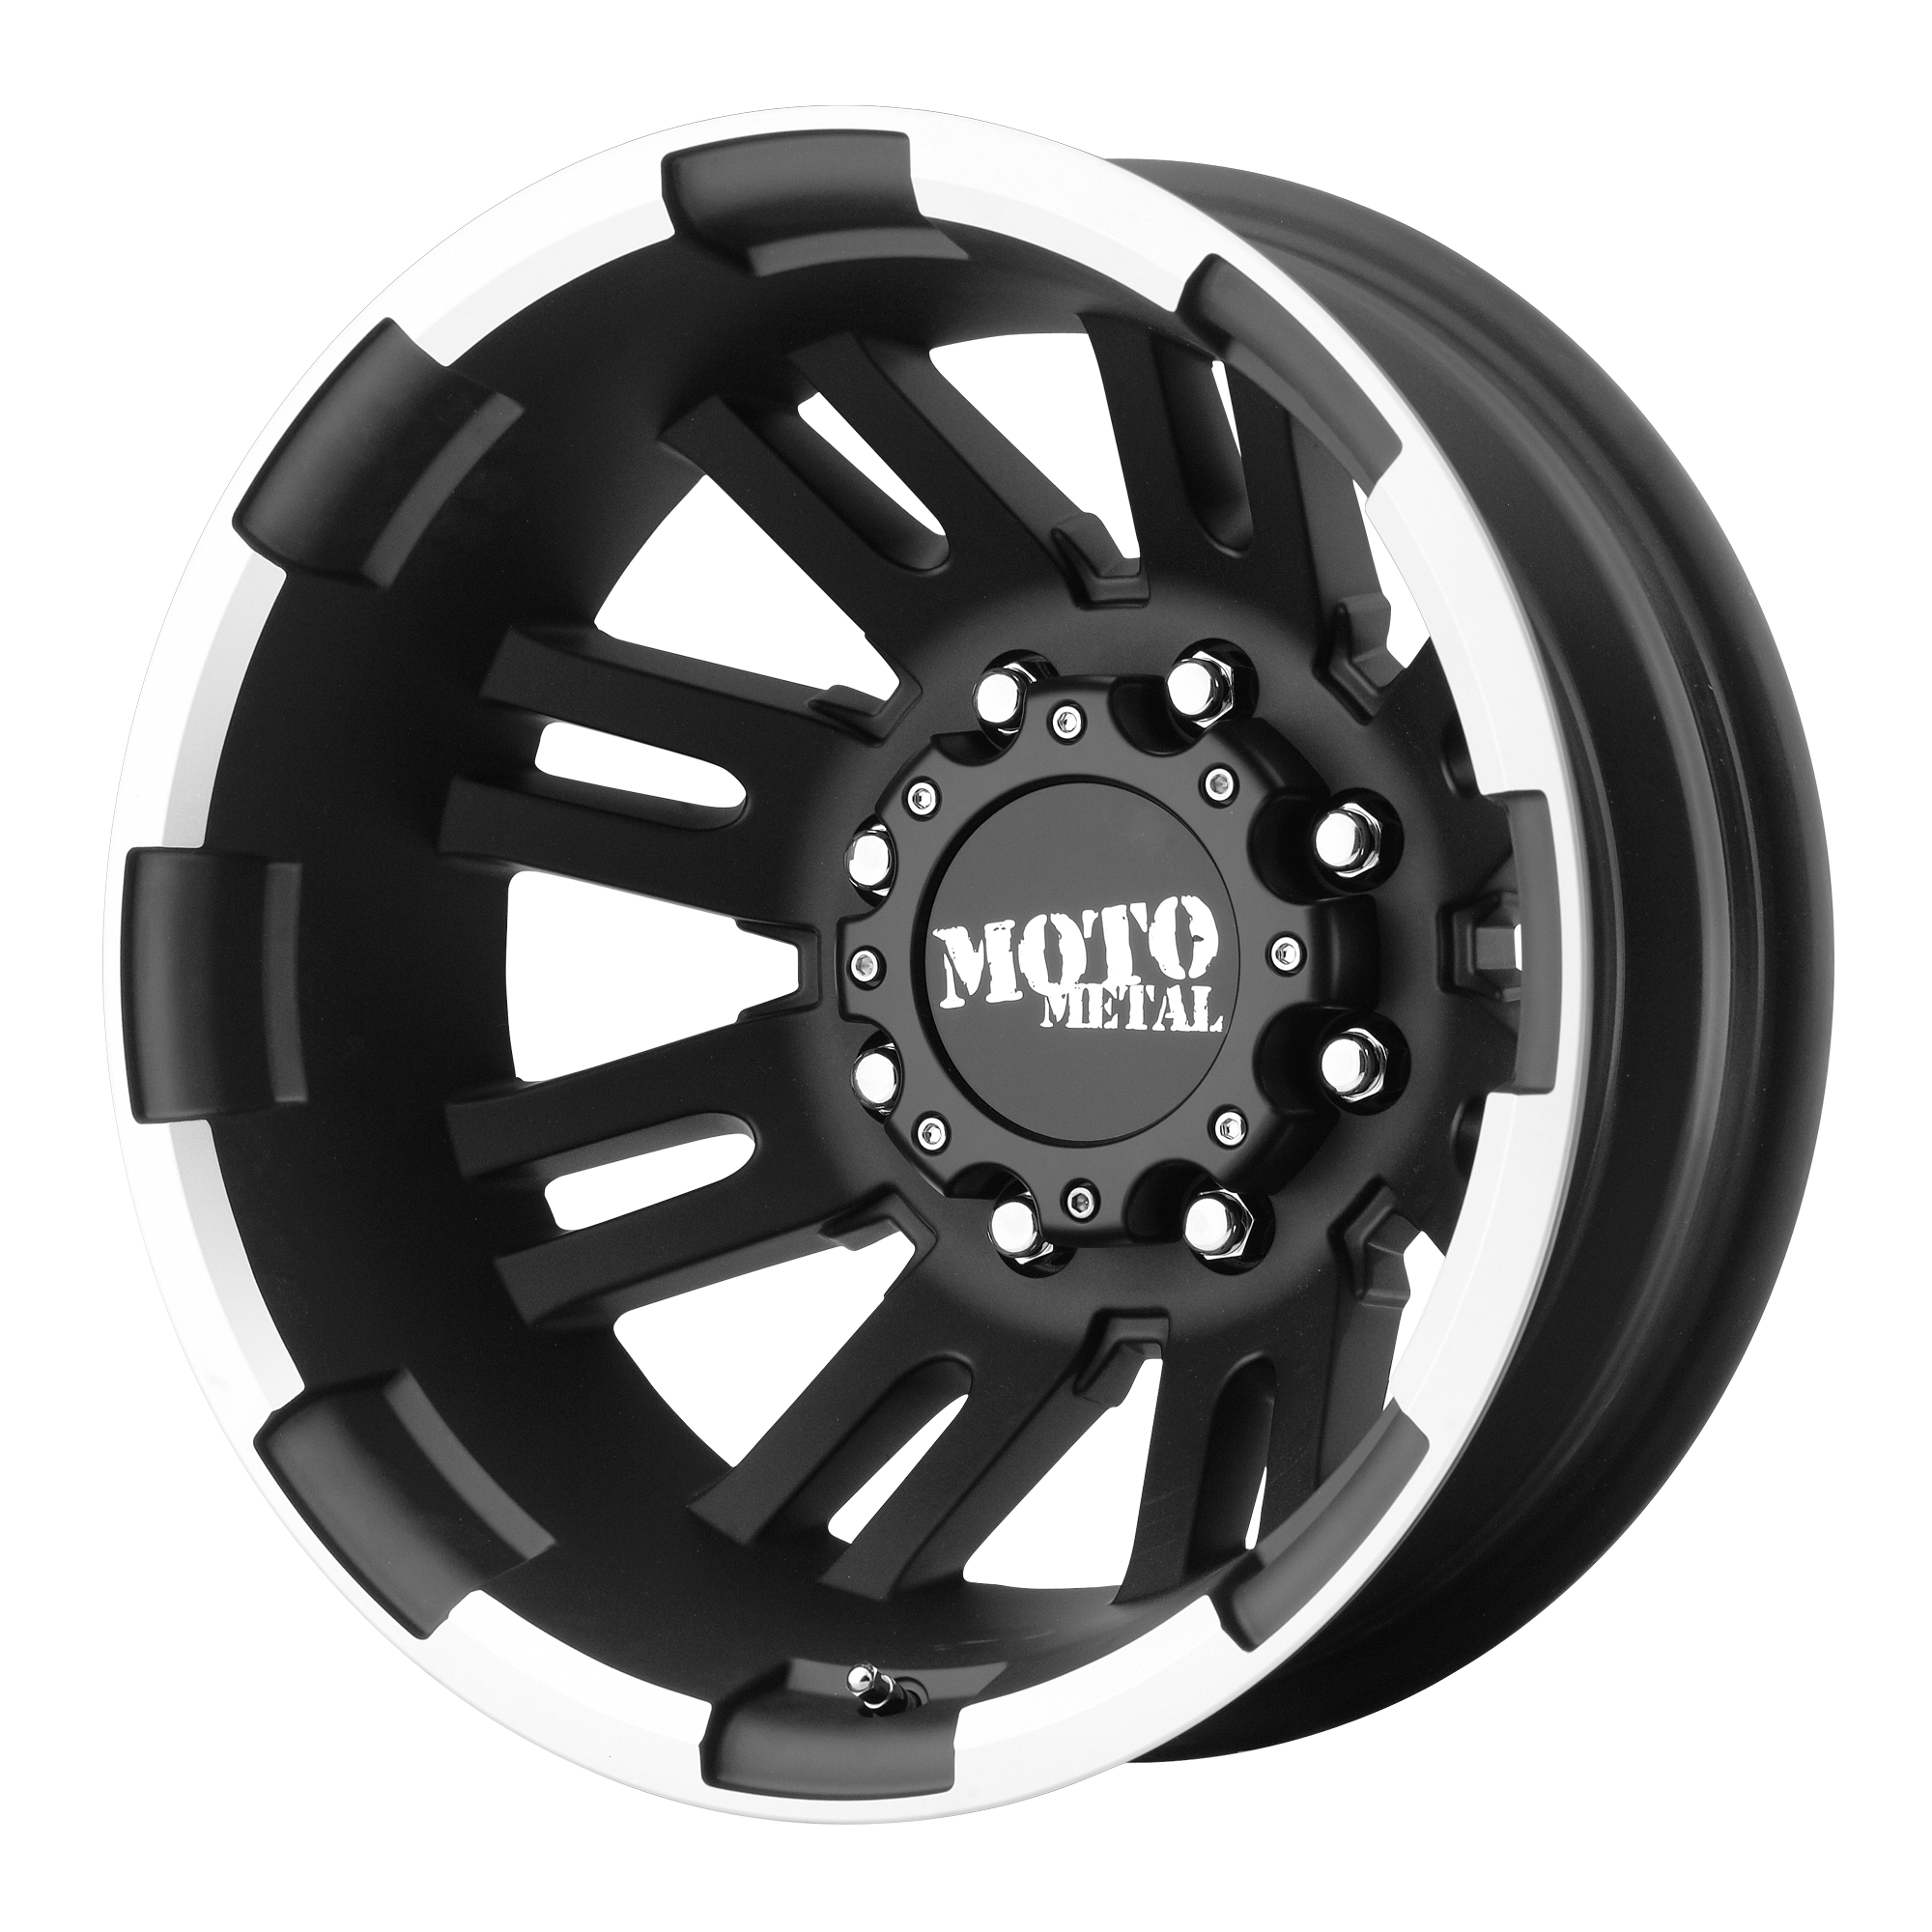 Moto Metal Offroad Wheels MO963 DUALLY Matte Black Machined DUALLY (RR)